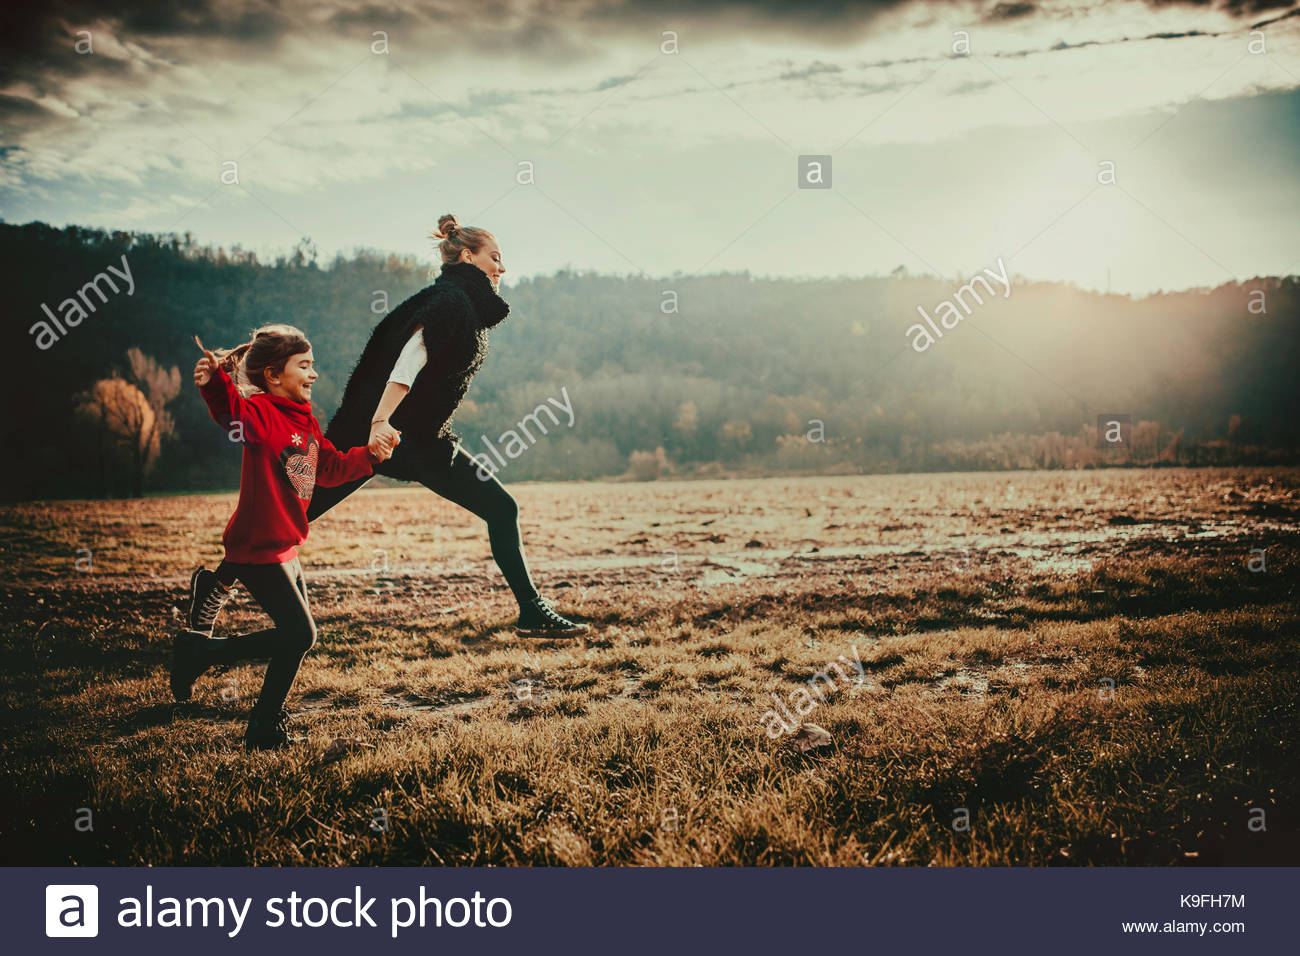 Freedom, carelessness, girls running in fields in the countryside at sunset - Stock Image